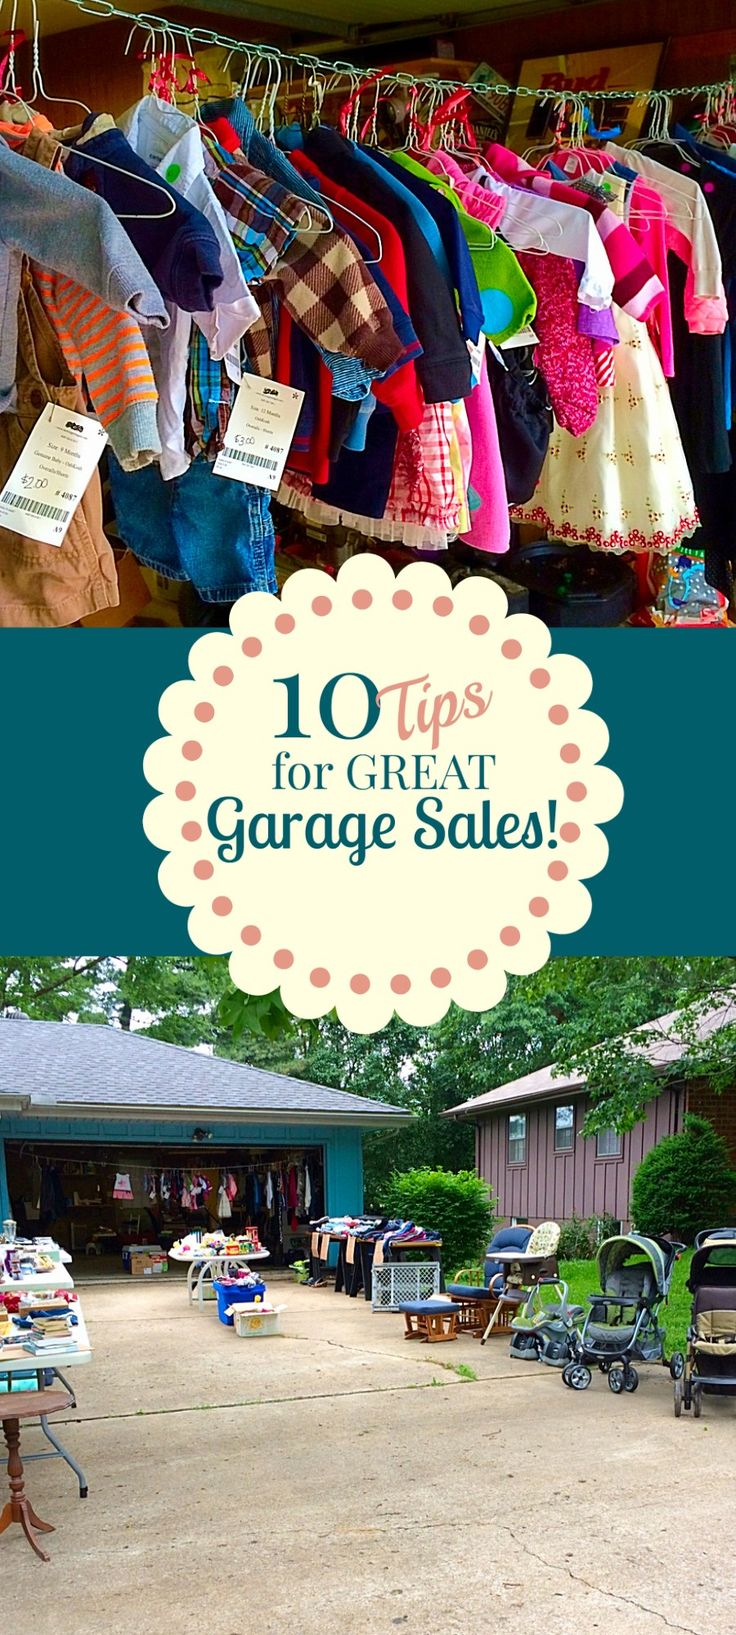 Tips for great garage sales.  Quick ideas to make the most money at your next yard sale.